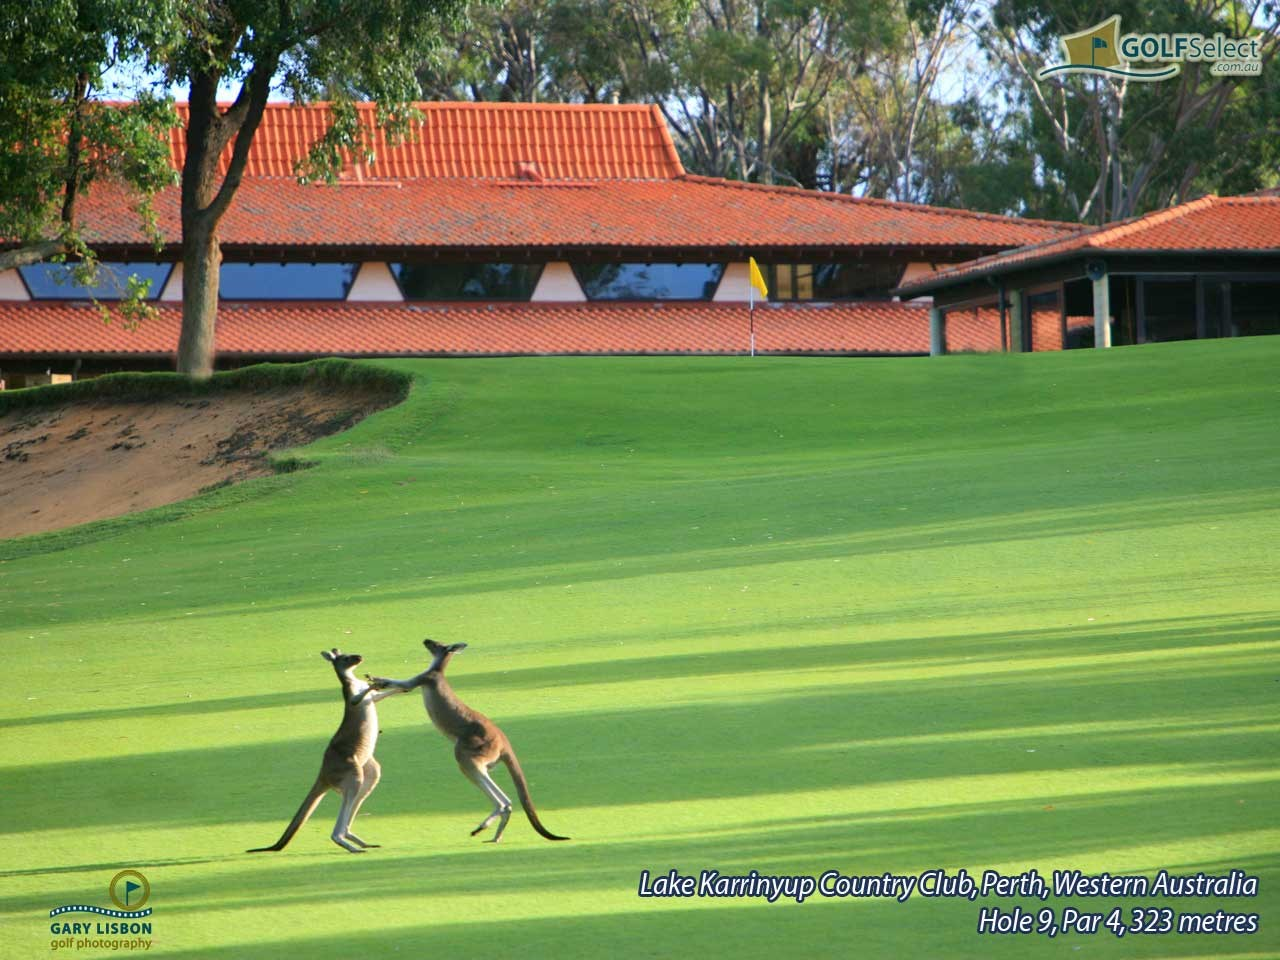 Lake Karrinyup Country Club Hole 9, Par 4, 323 metres